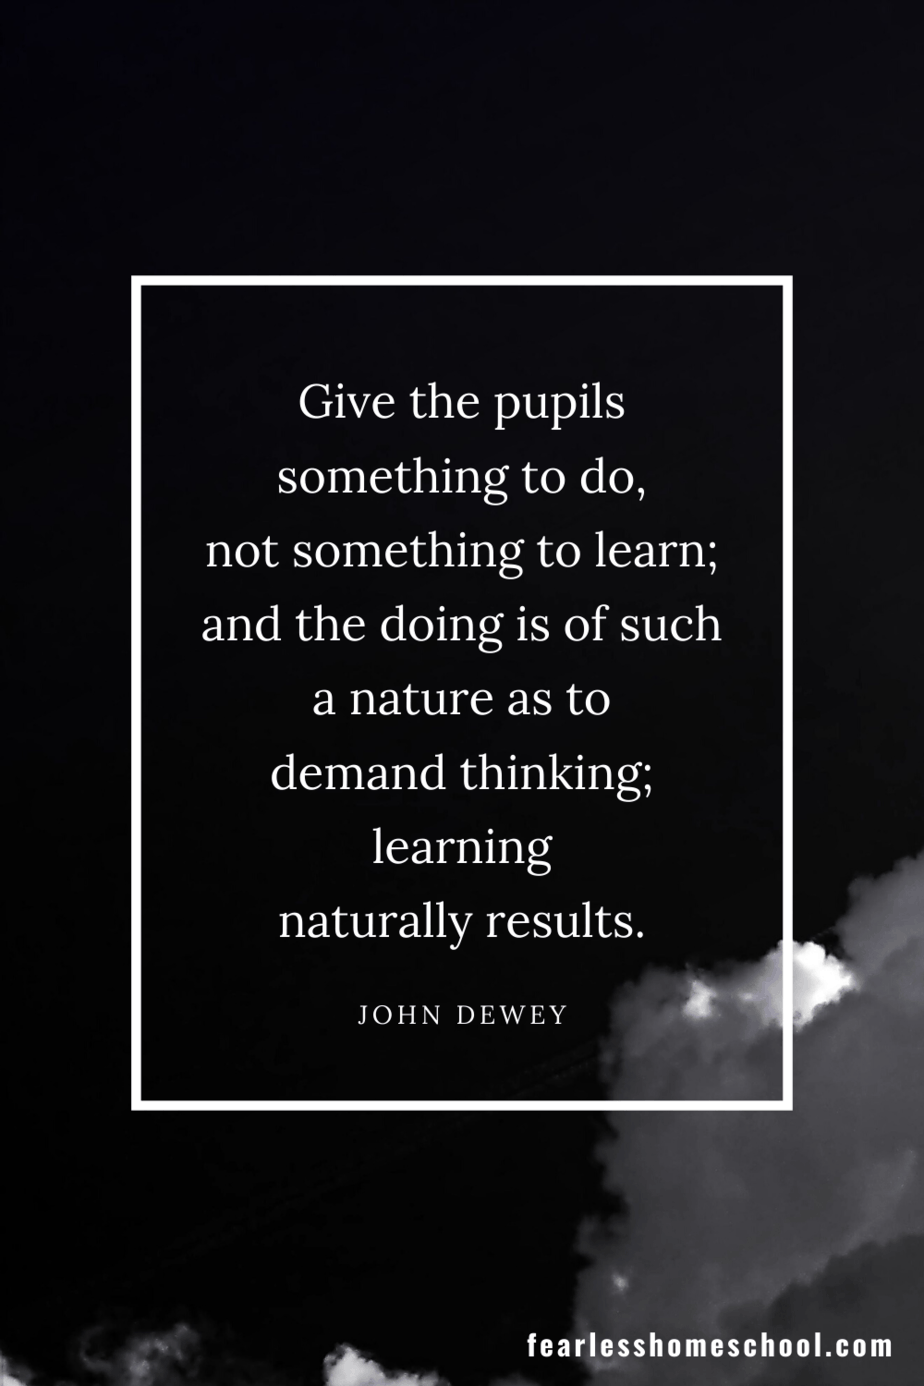 Give the pupils something to do, not something to learn; and the doing is of such a nature as to demand thinking; learning naturally results. John Dewey homeschooling quote